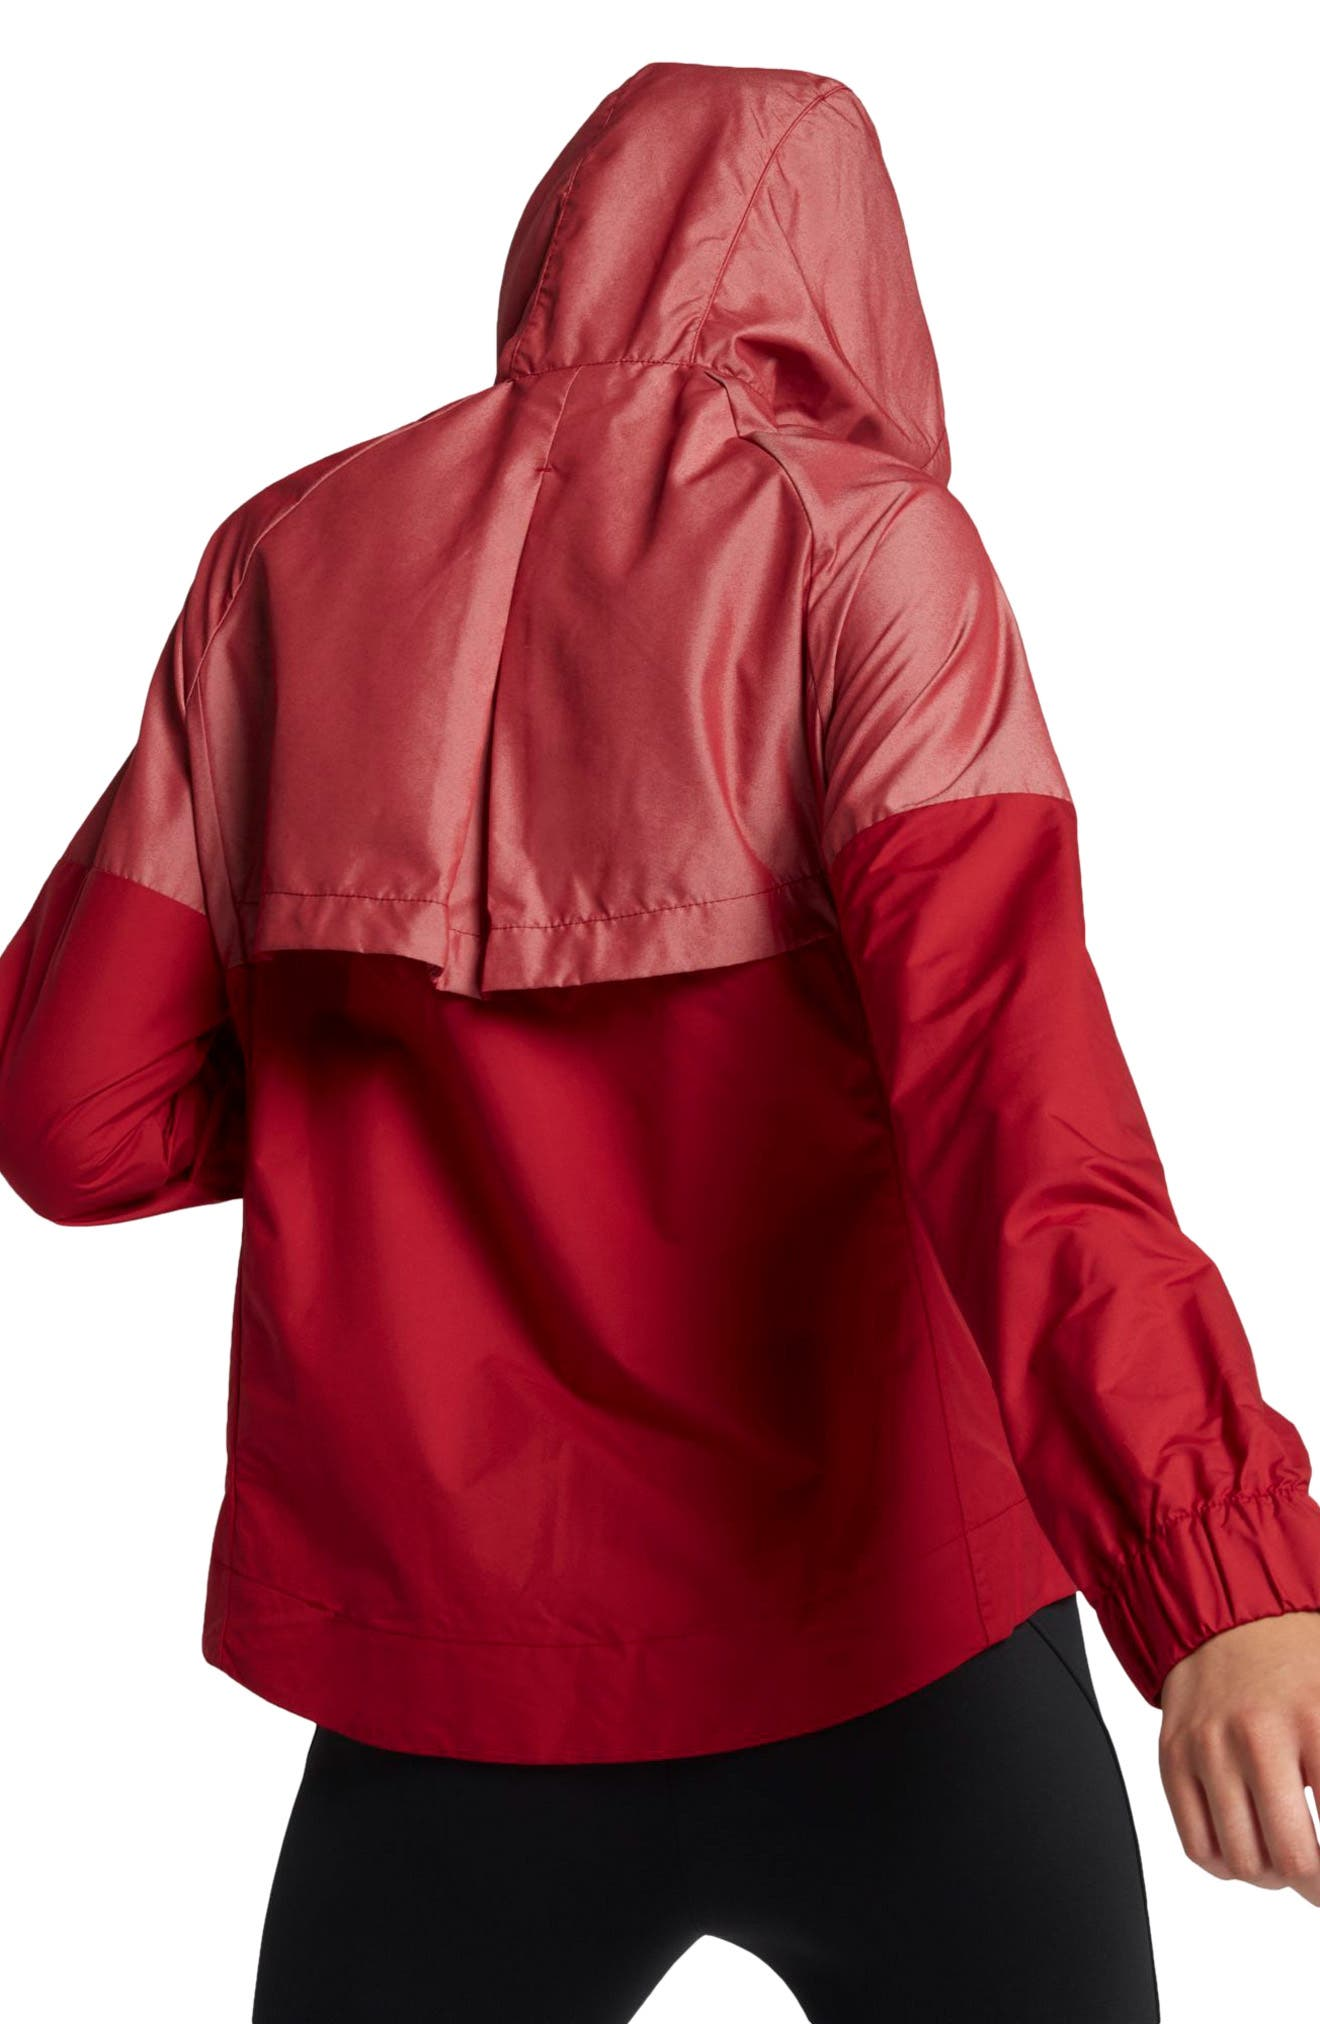 Windrunner Jacket,                             Alternate thumbnail 3, color,                             Tough Red/ Tough Red